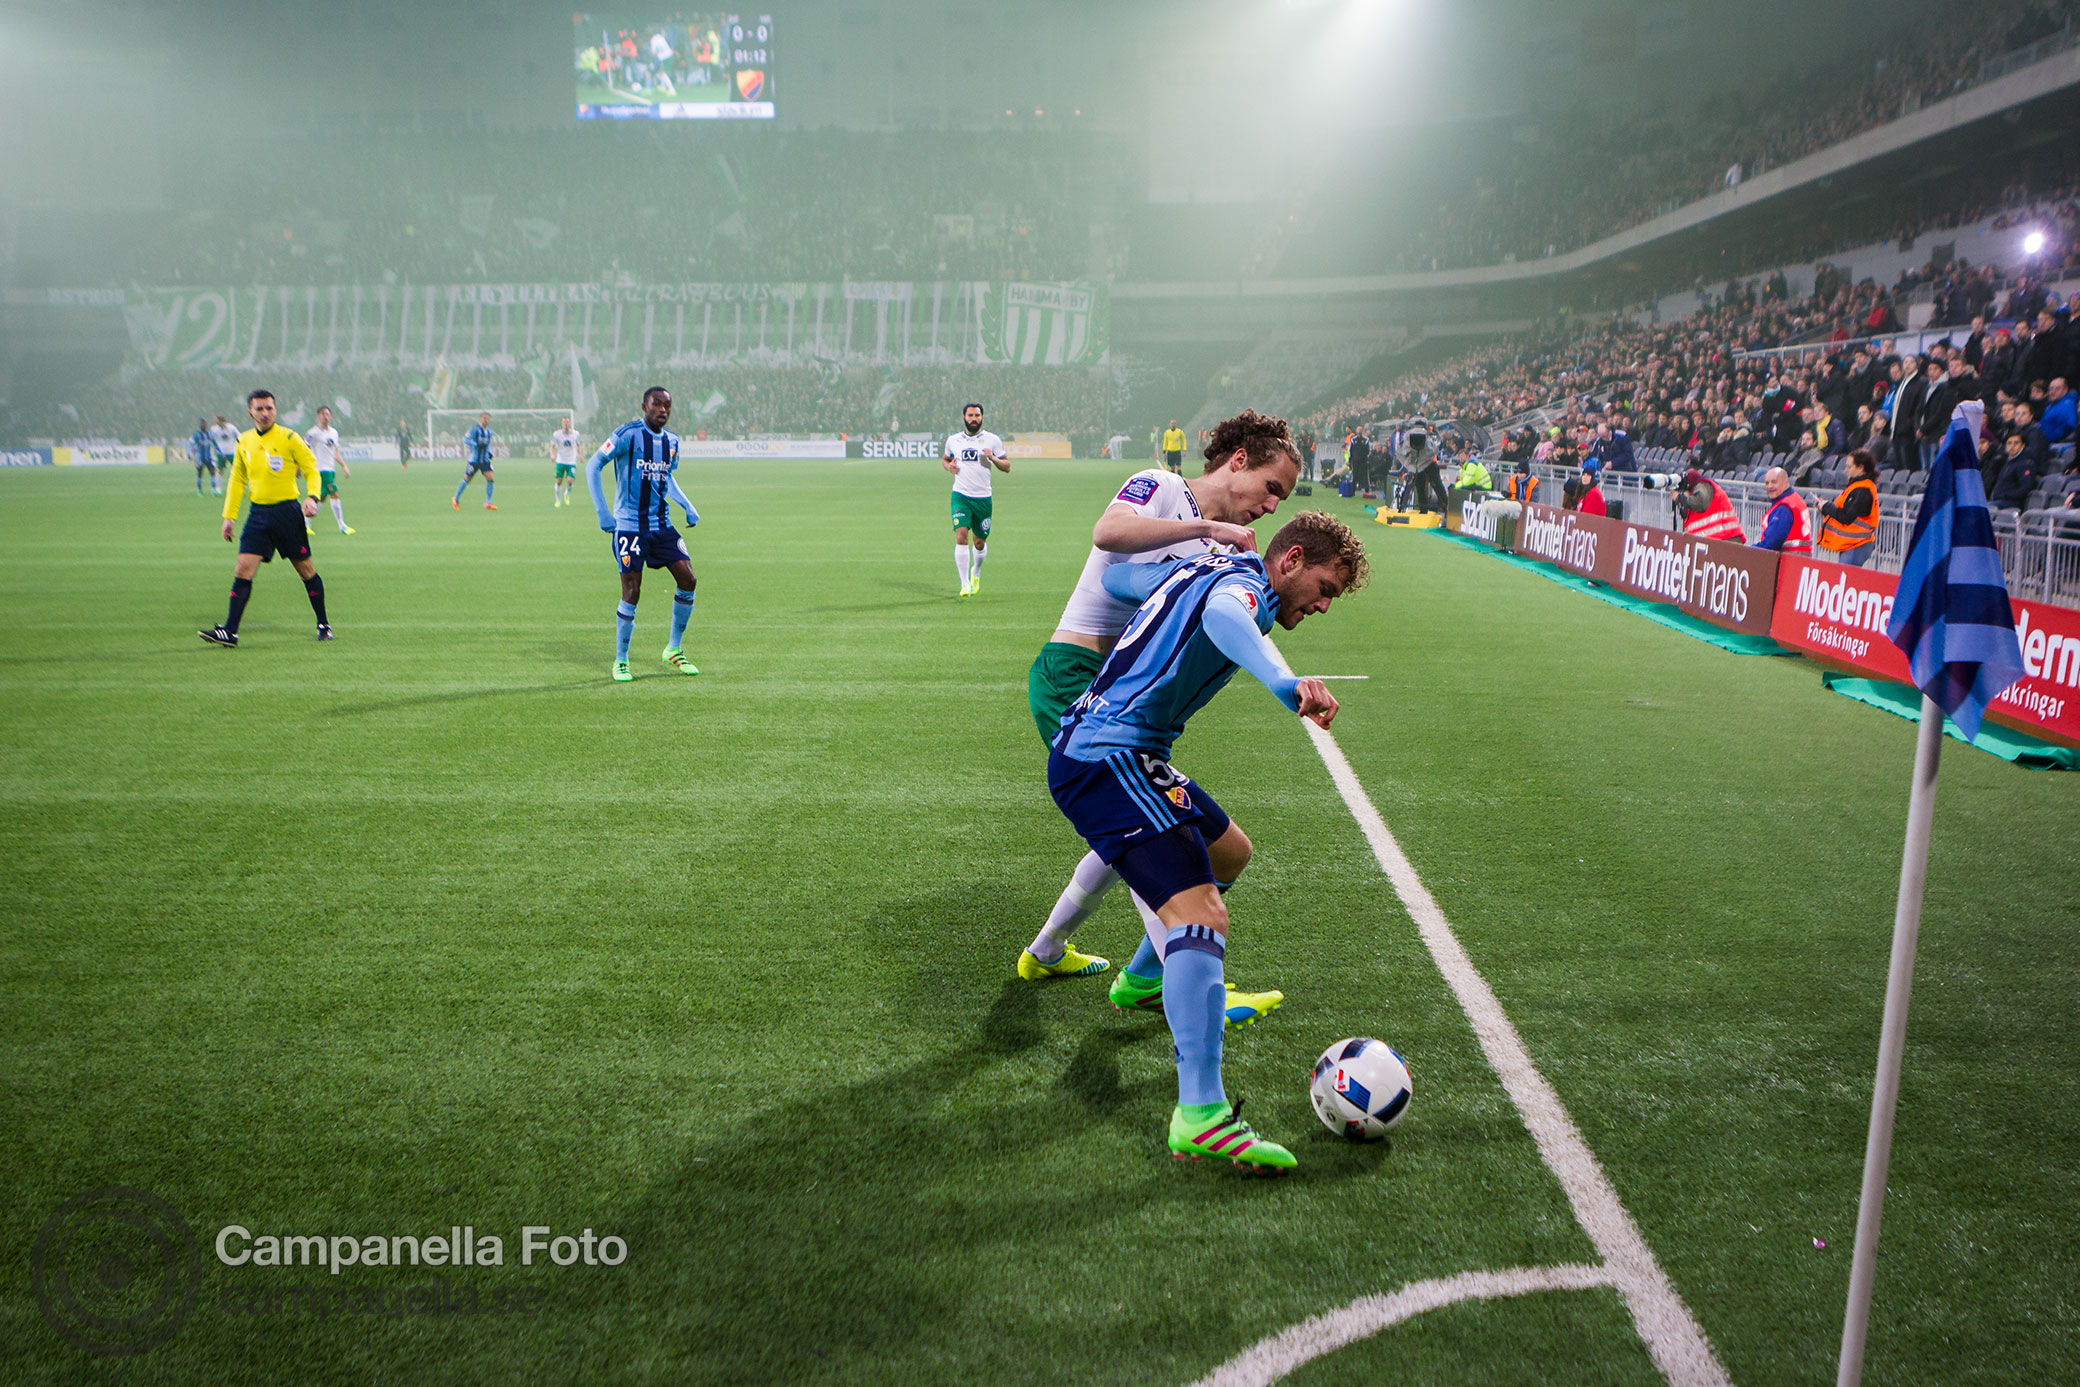 Hammarby takes Swedish Cup Derby - Sports photography Michael Campanella